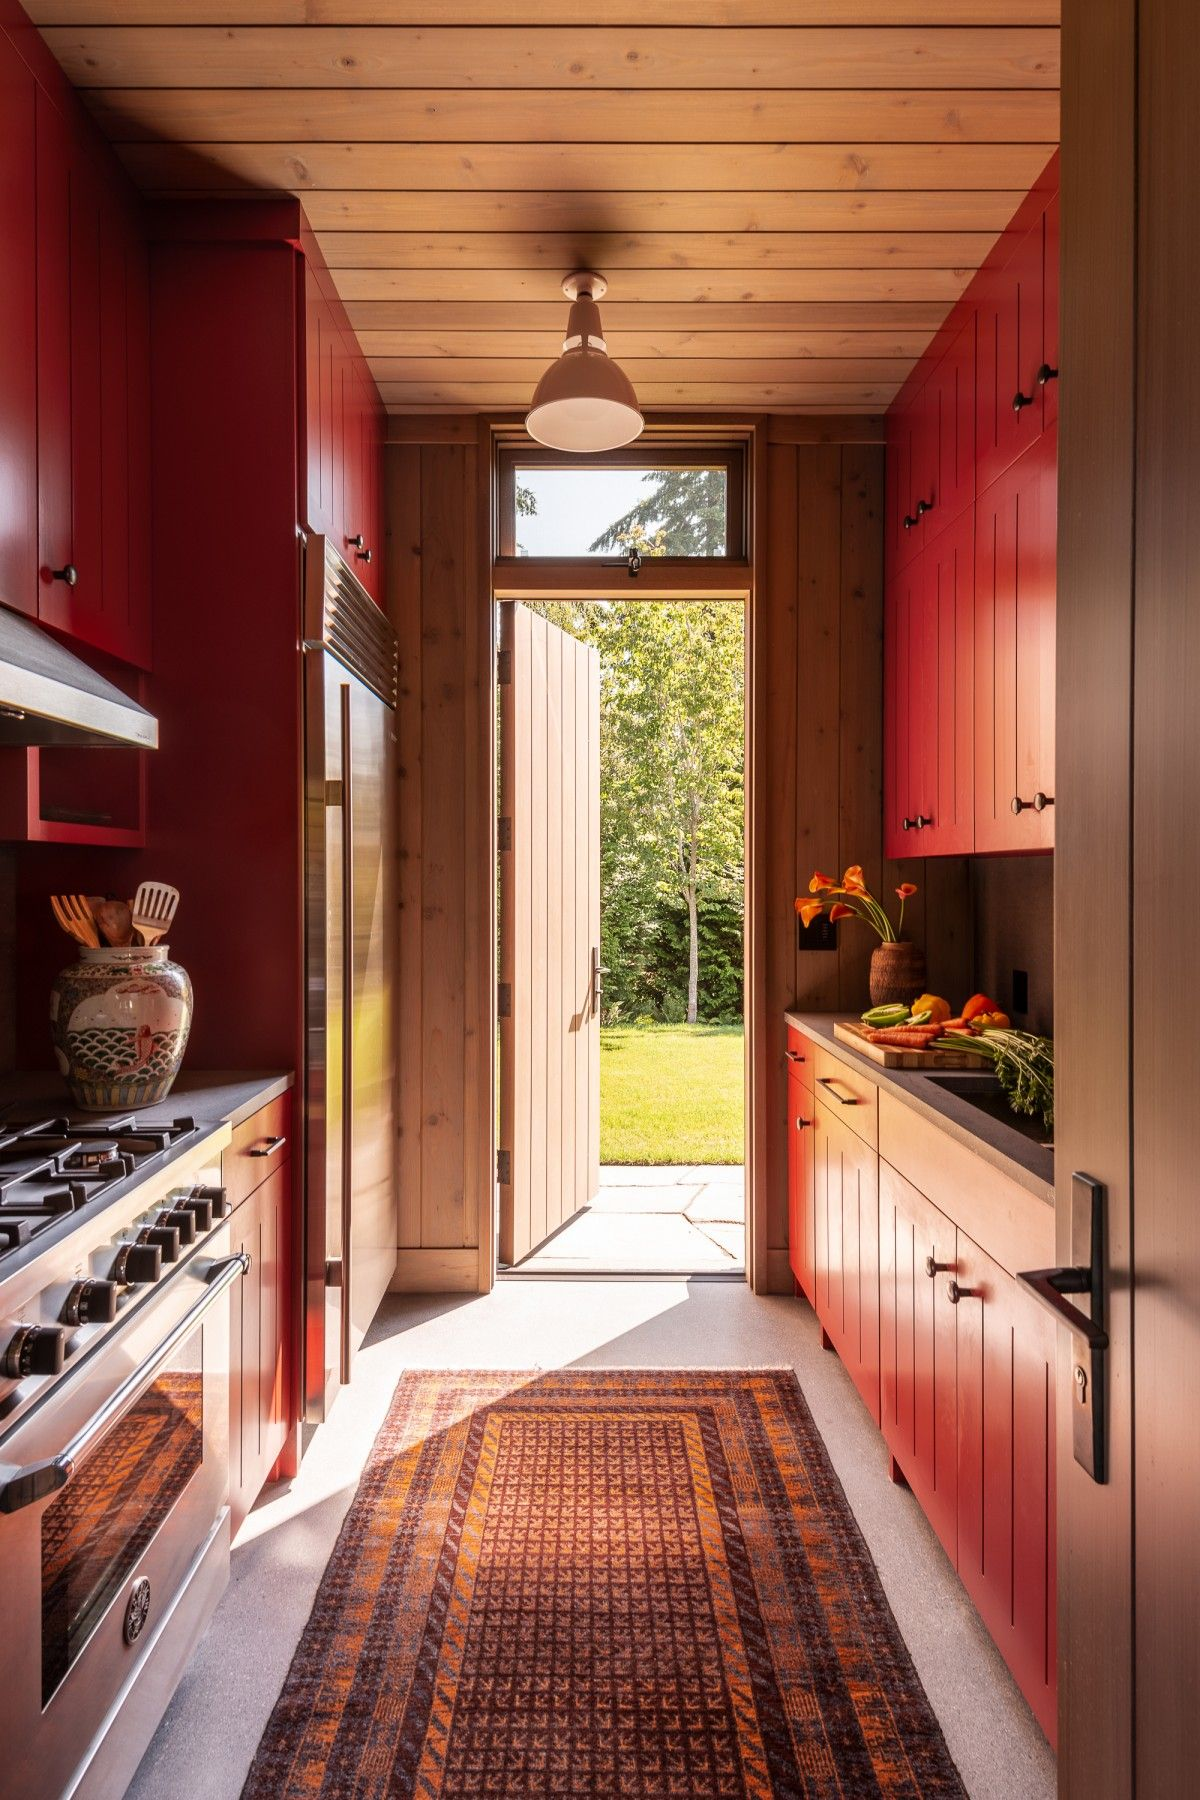 The kitchen has direct access outdoors through a wooden back door